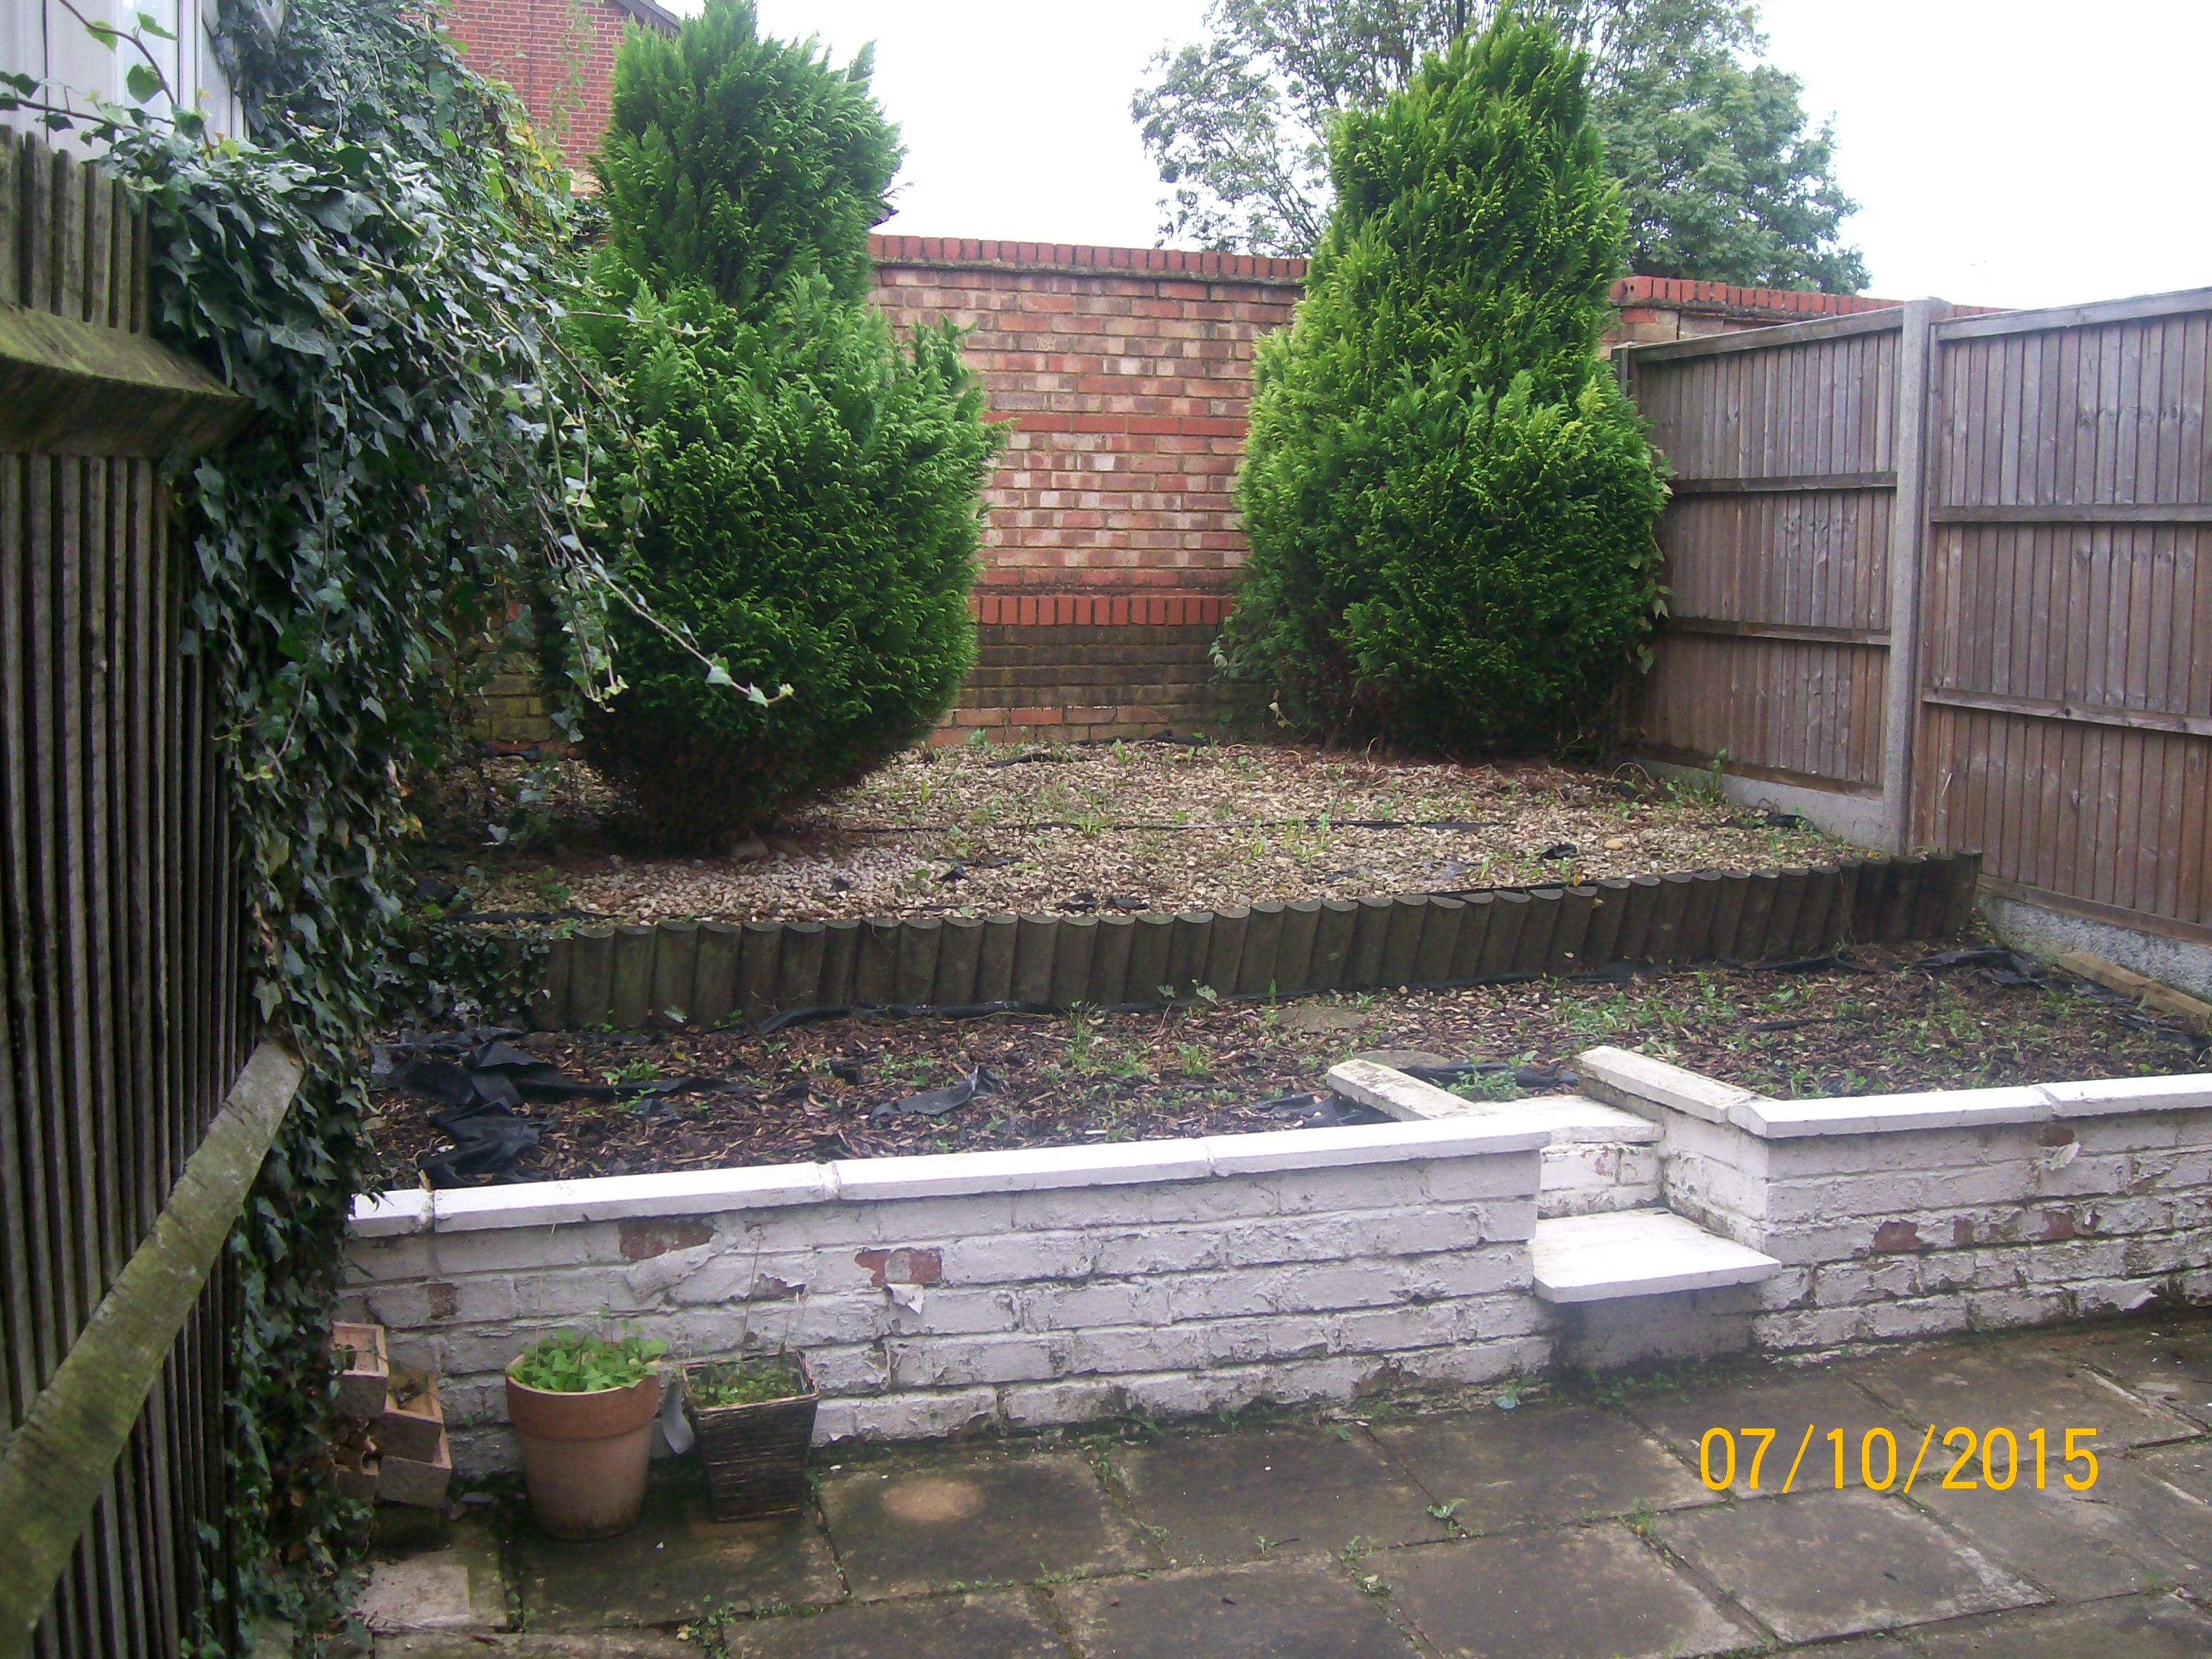 2 bedroom house for rent private landlord in slough. 2 bedroom part-furnished end of terrace to rent on boulters close, slough, house for private landlord in slough h